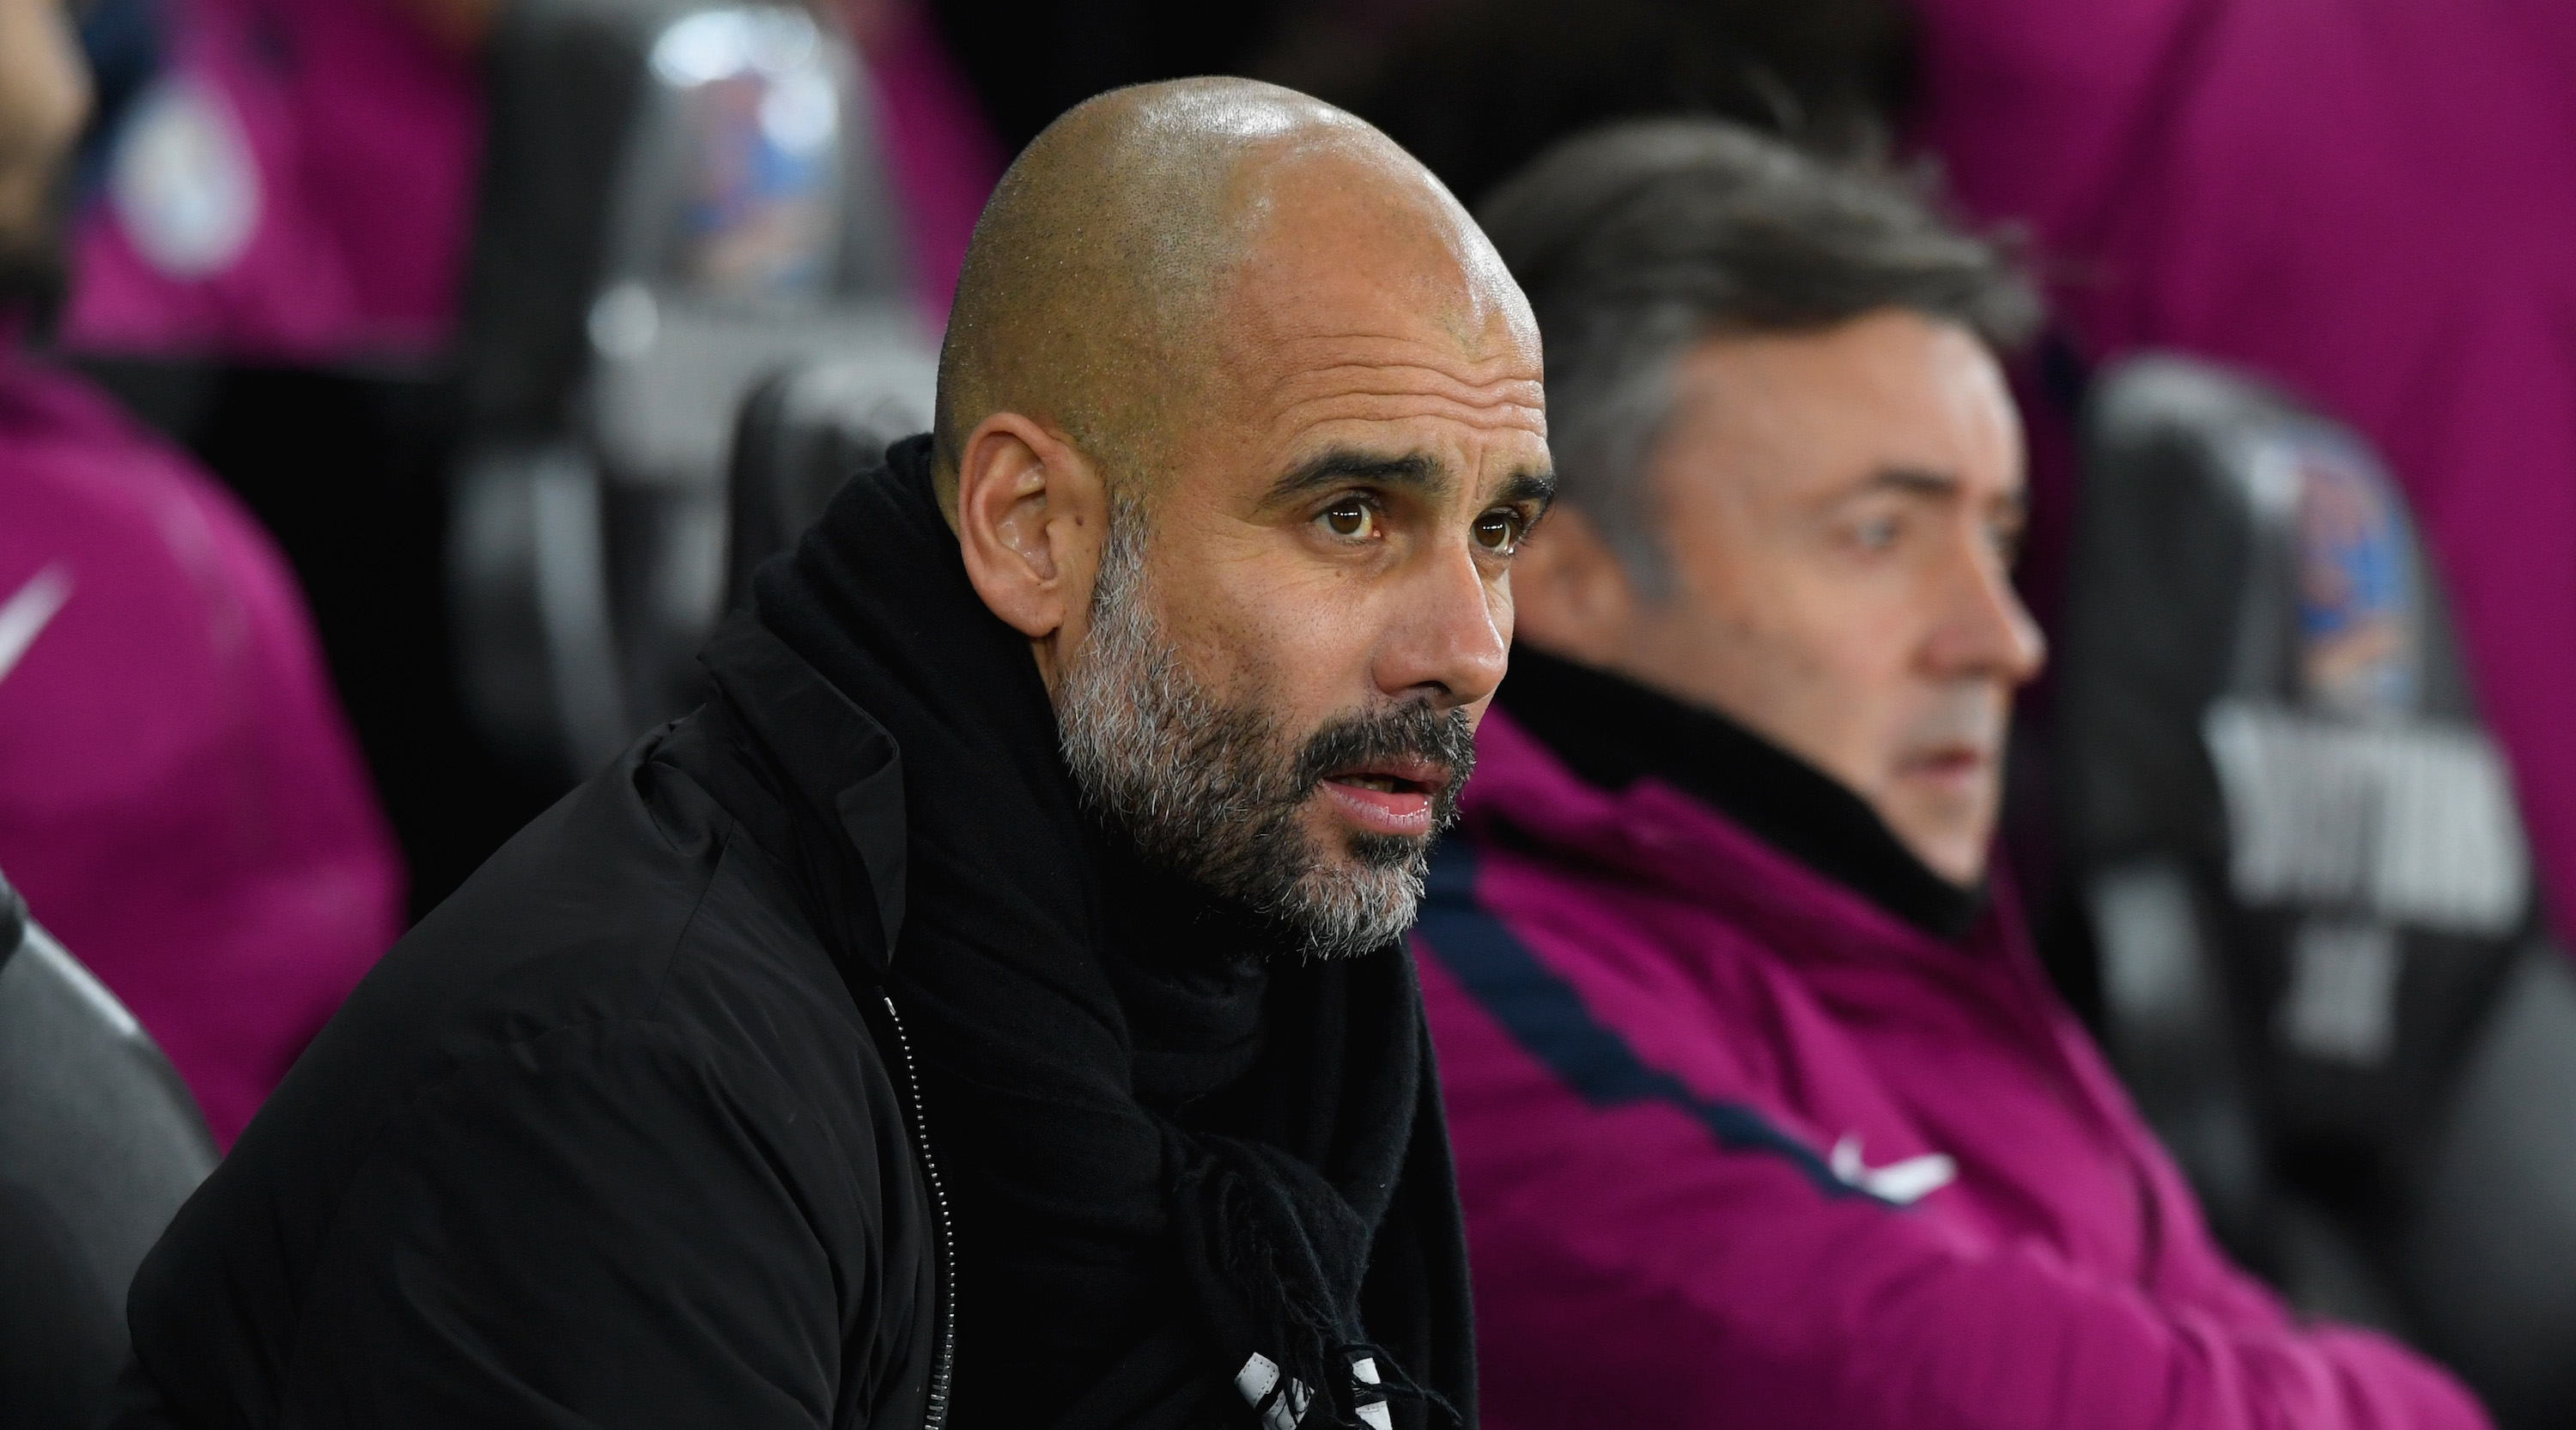 SWANSEA, WALES - DECEMBER 13: Manchester City manager Pep Guardiola reacts on the touchline during the Premier League match between Swansea City and Manchester City at Liberty Stadium on December 13, 2017 in Swansea, Wales. (Photo by Stu Forster/Getty Images)